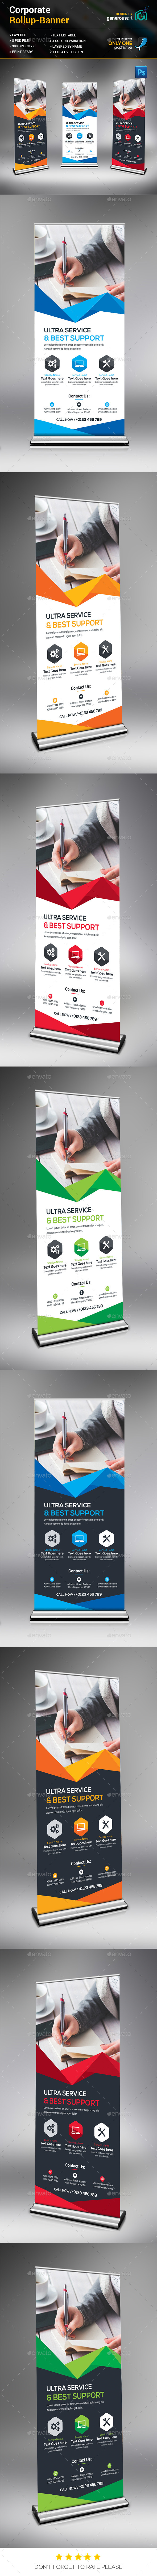 Creative Rollup Banner - Signage Print Templates